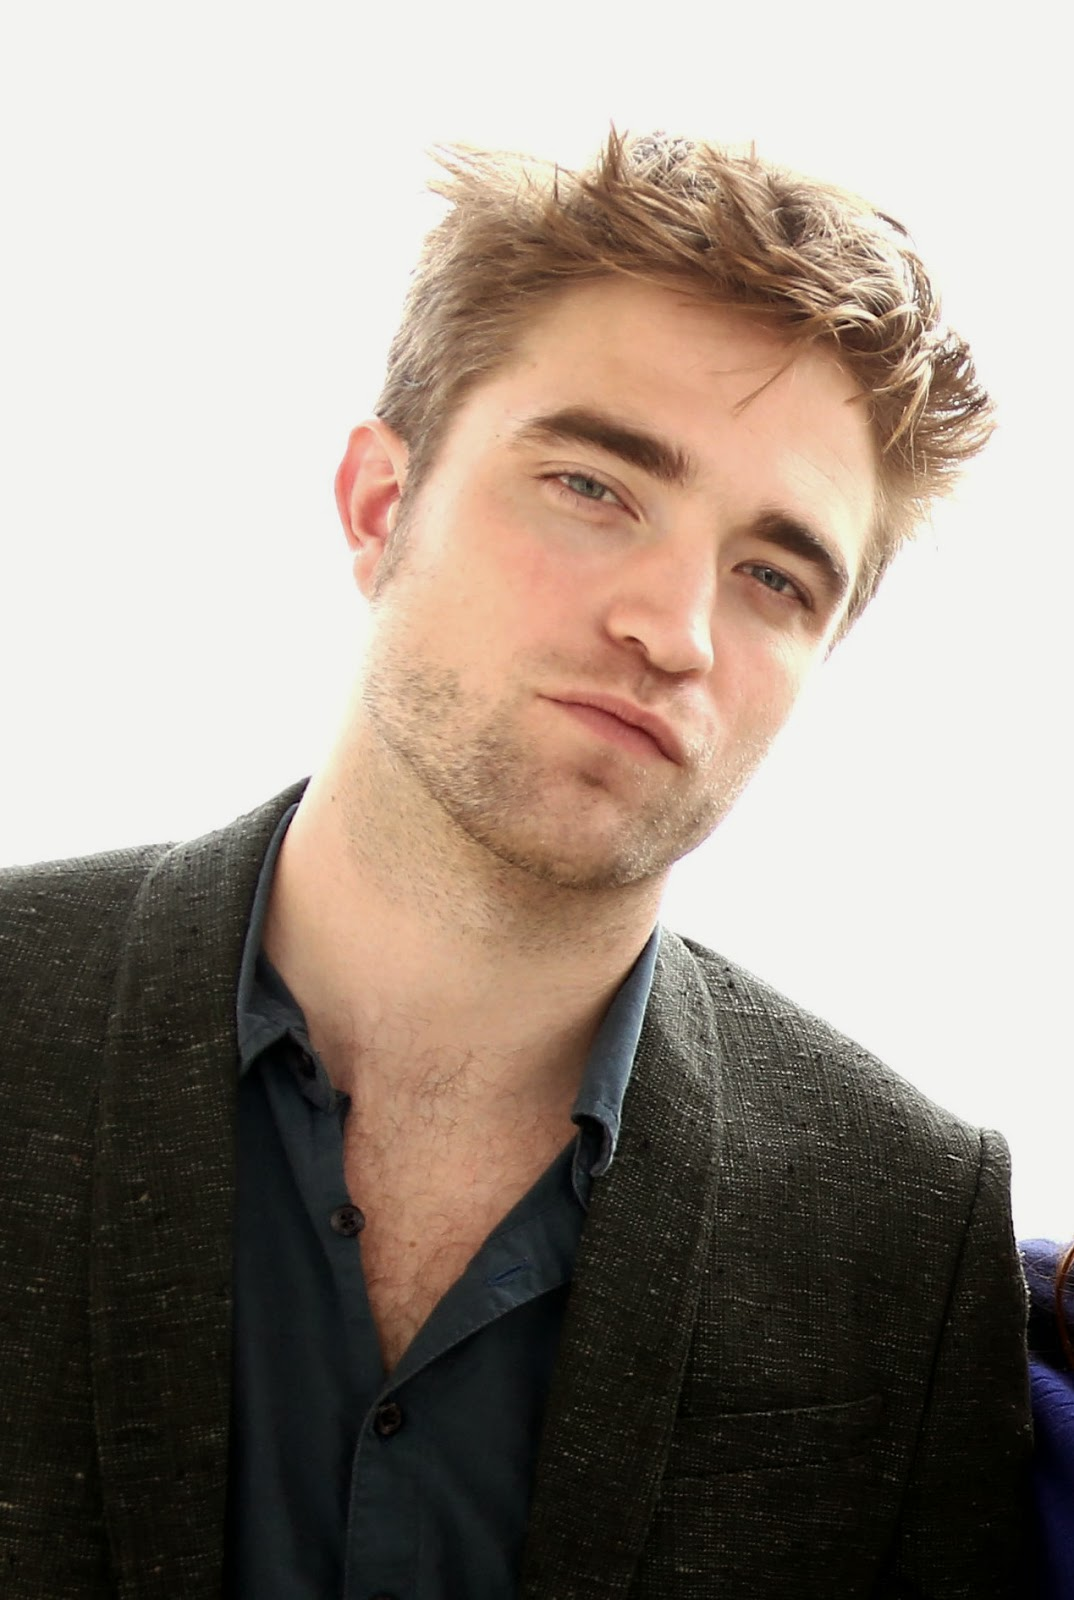 http://www.pattinson-art-work.com/2012/11/shooting-2012-breaking-dawn-part-2-la.html